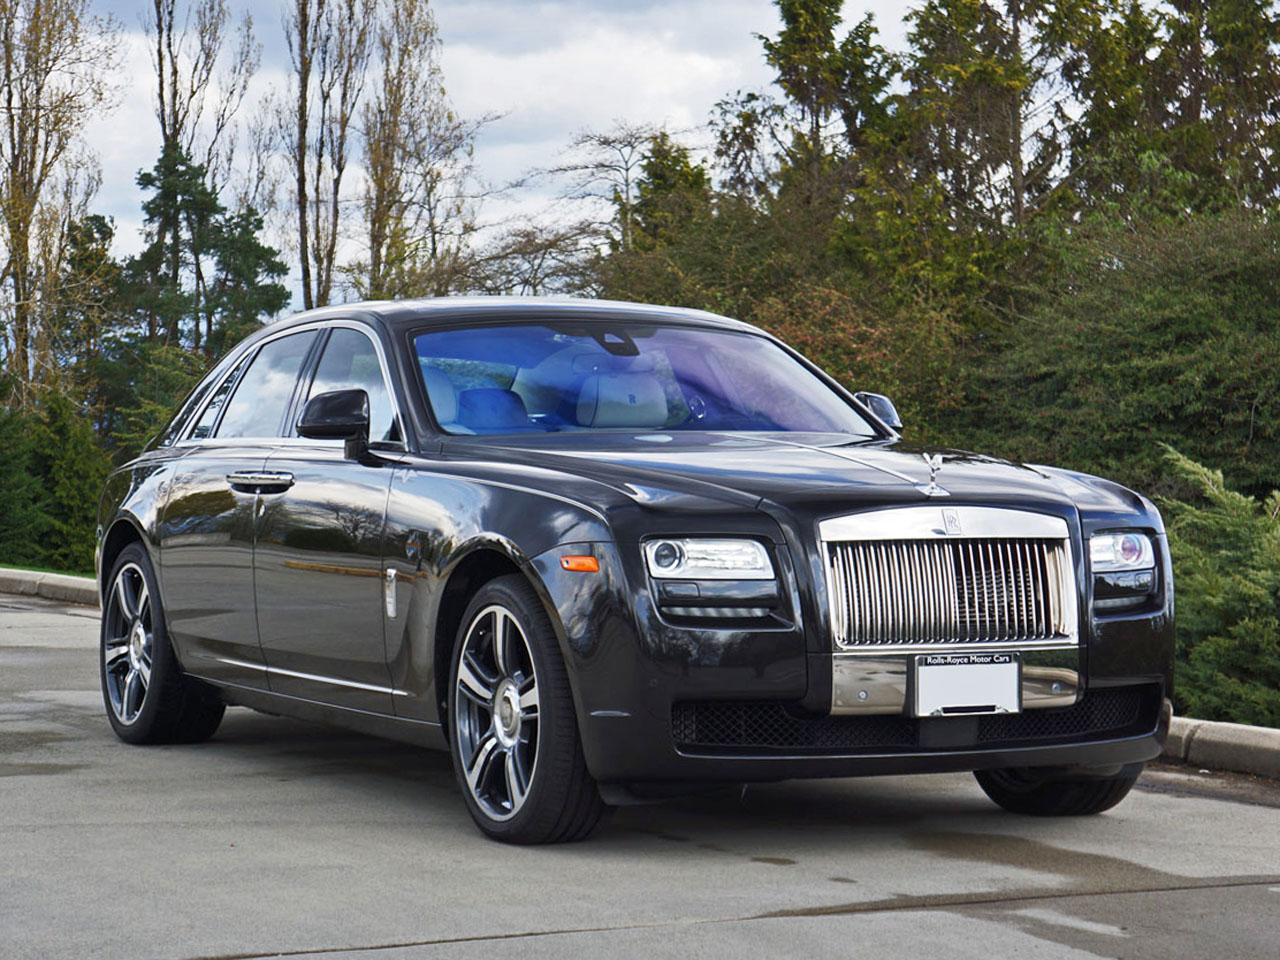 2014 rolls royce ghost v specification road test review carcostcanada. Black Bedroom Furniture Sets. Home Design Ideas